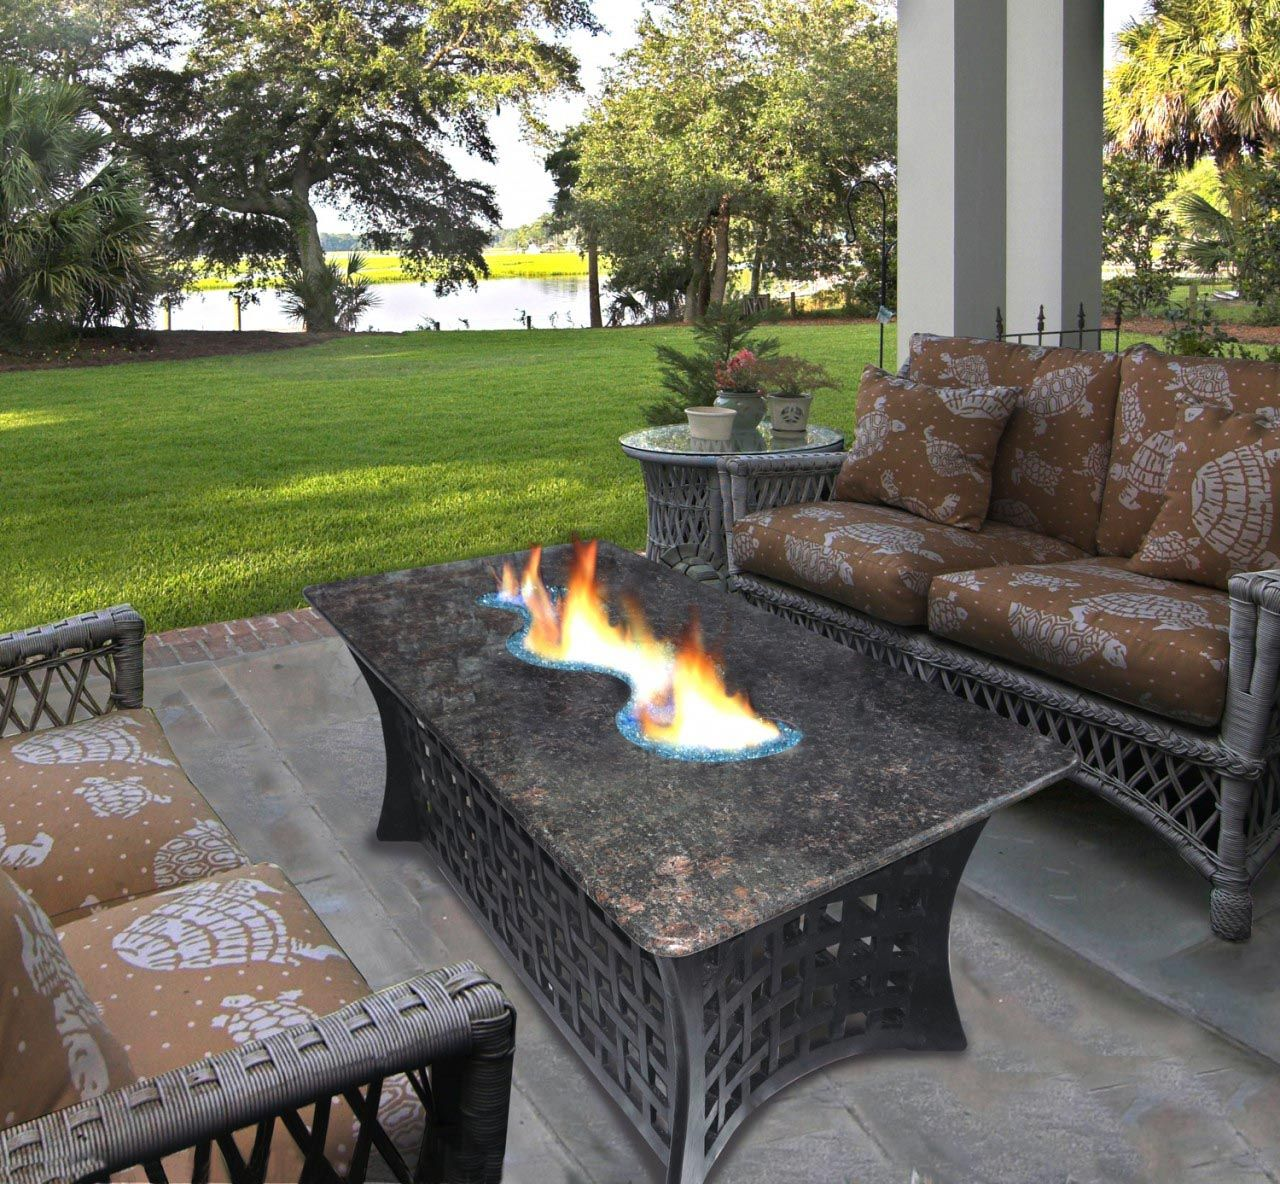 Outdoor furniture fire pit table and chairs